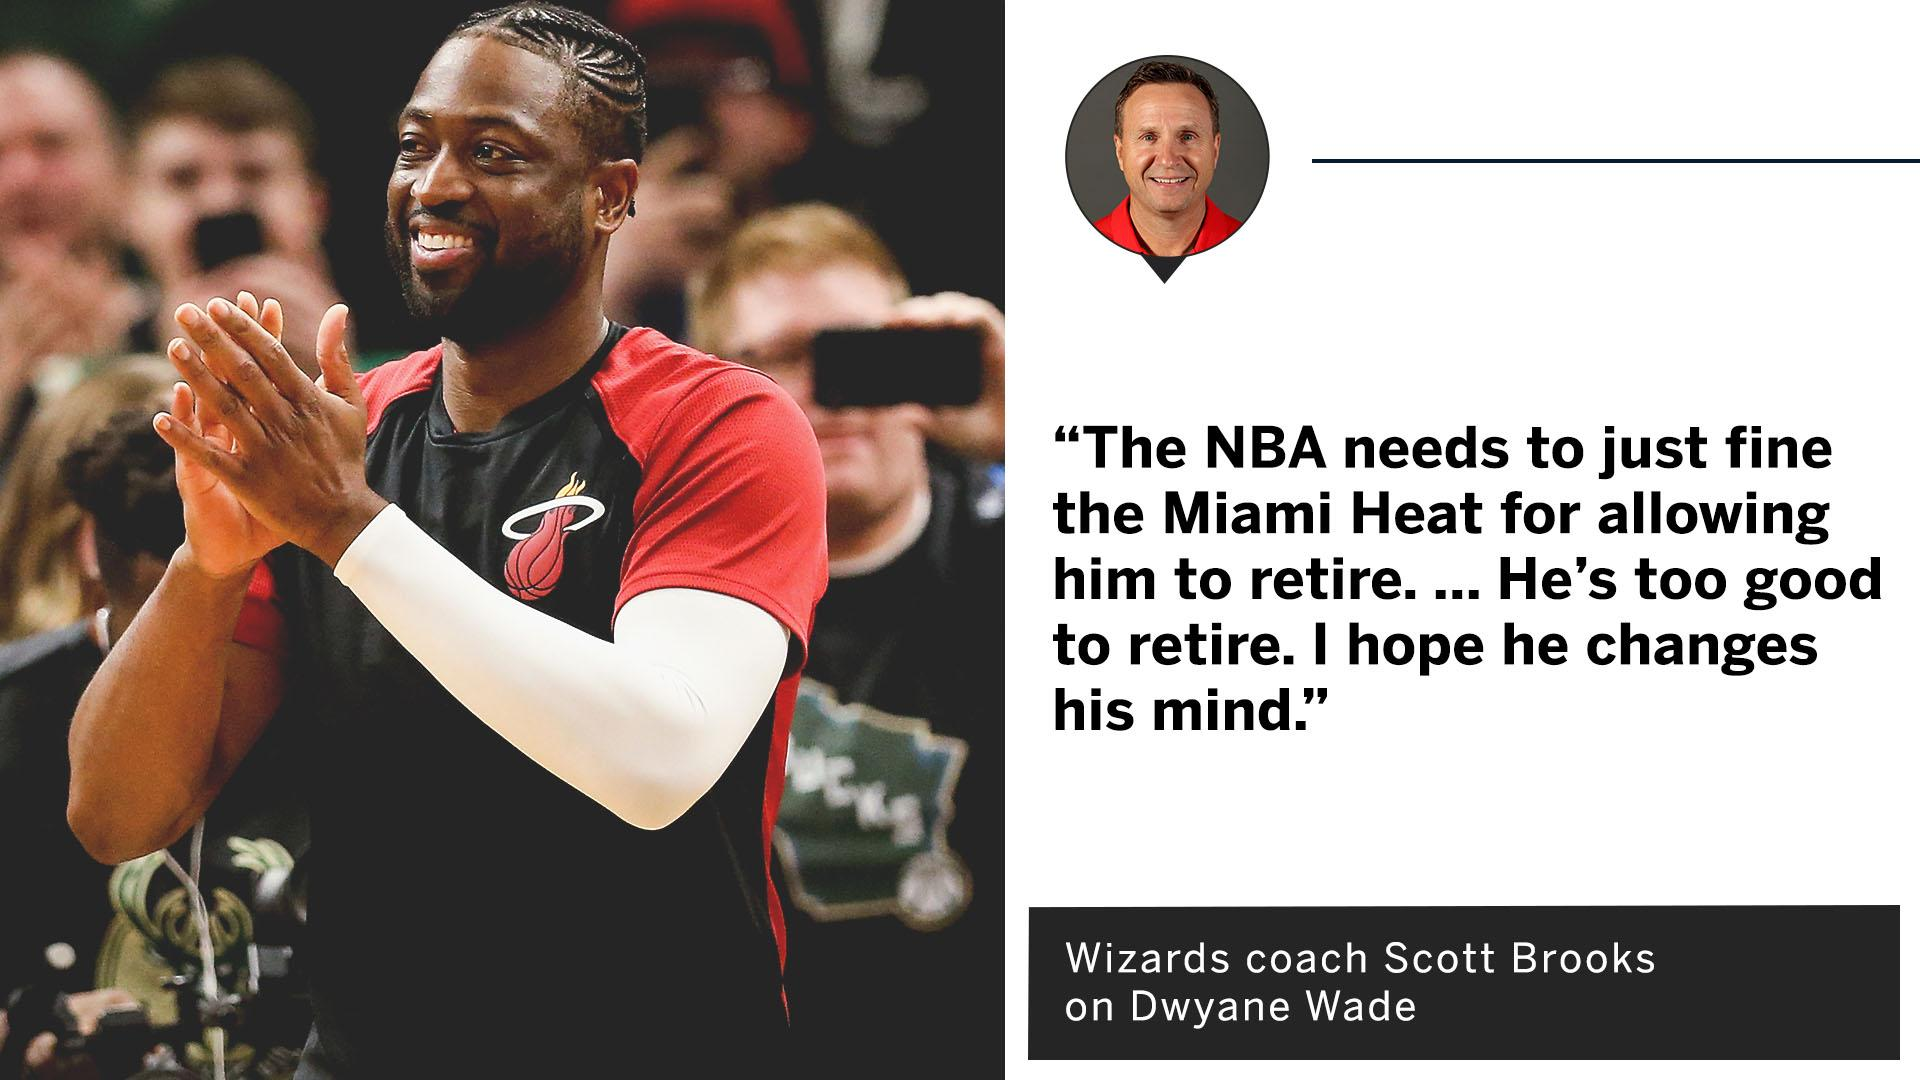 It'll be tough to see @DwyaneWade leave the game �� #OneLastDance https://t.co/jZYBD9ISTr